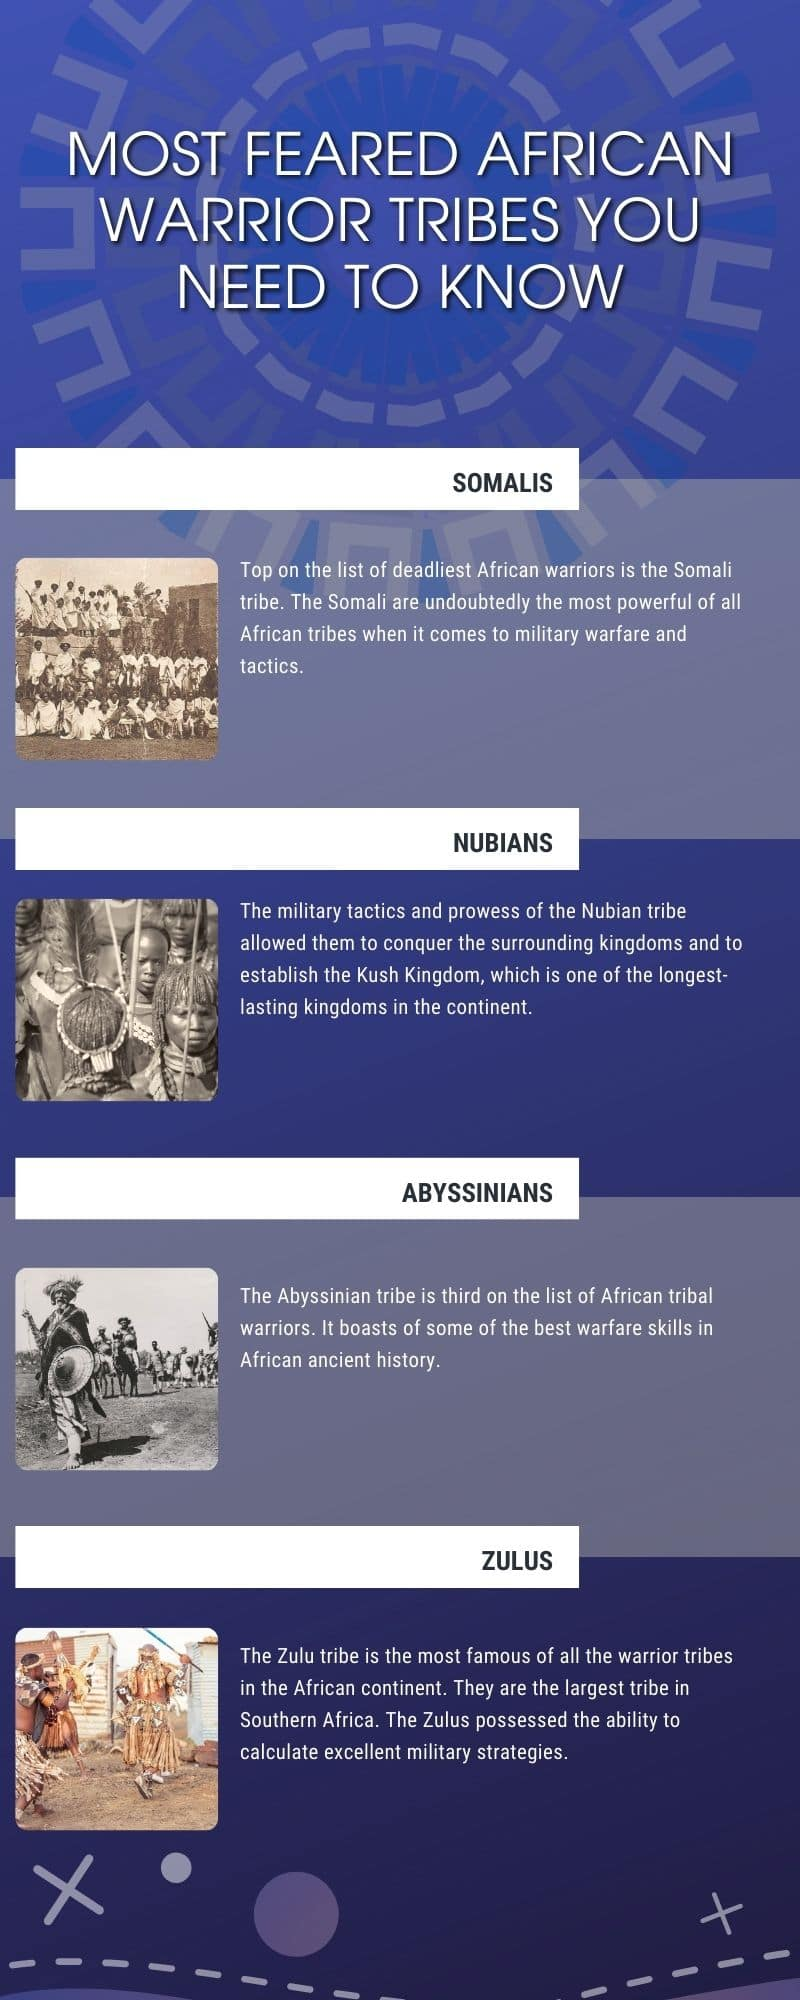 most feared African warrior tribes